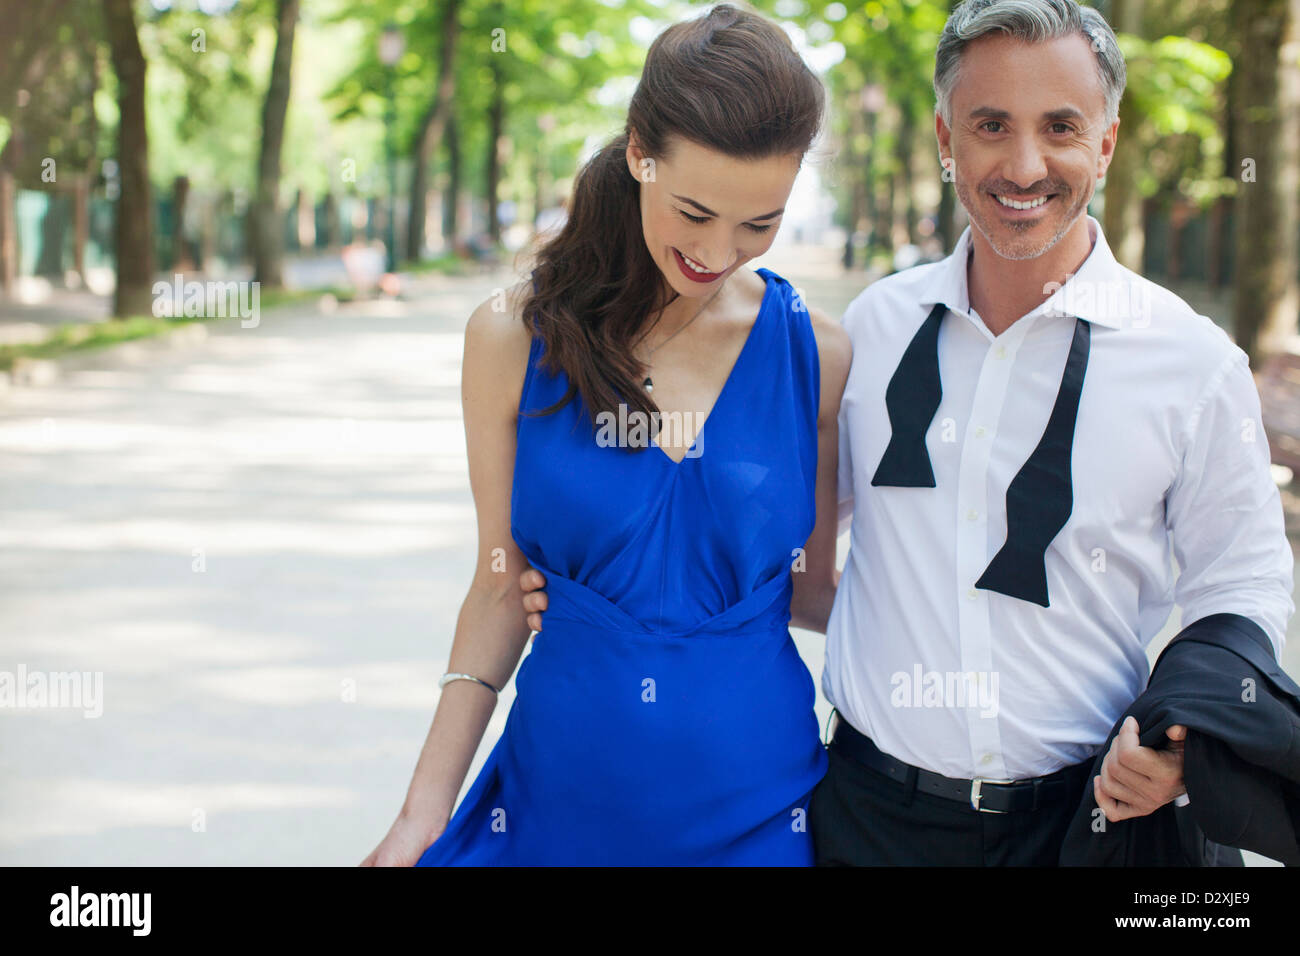 Smiling well-dressed couple in park - Stock Image